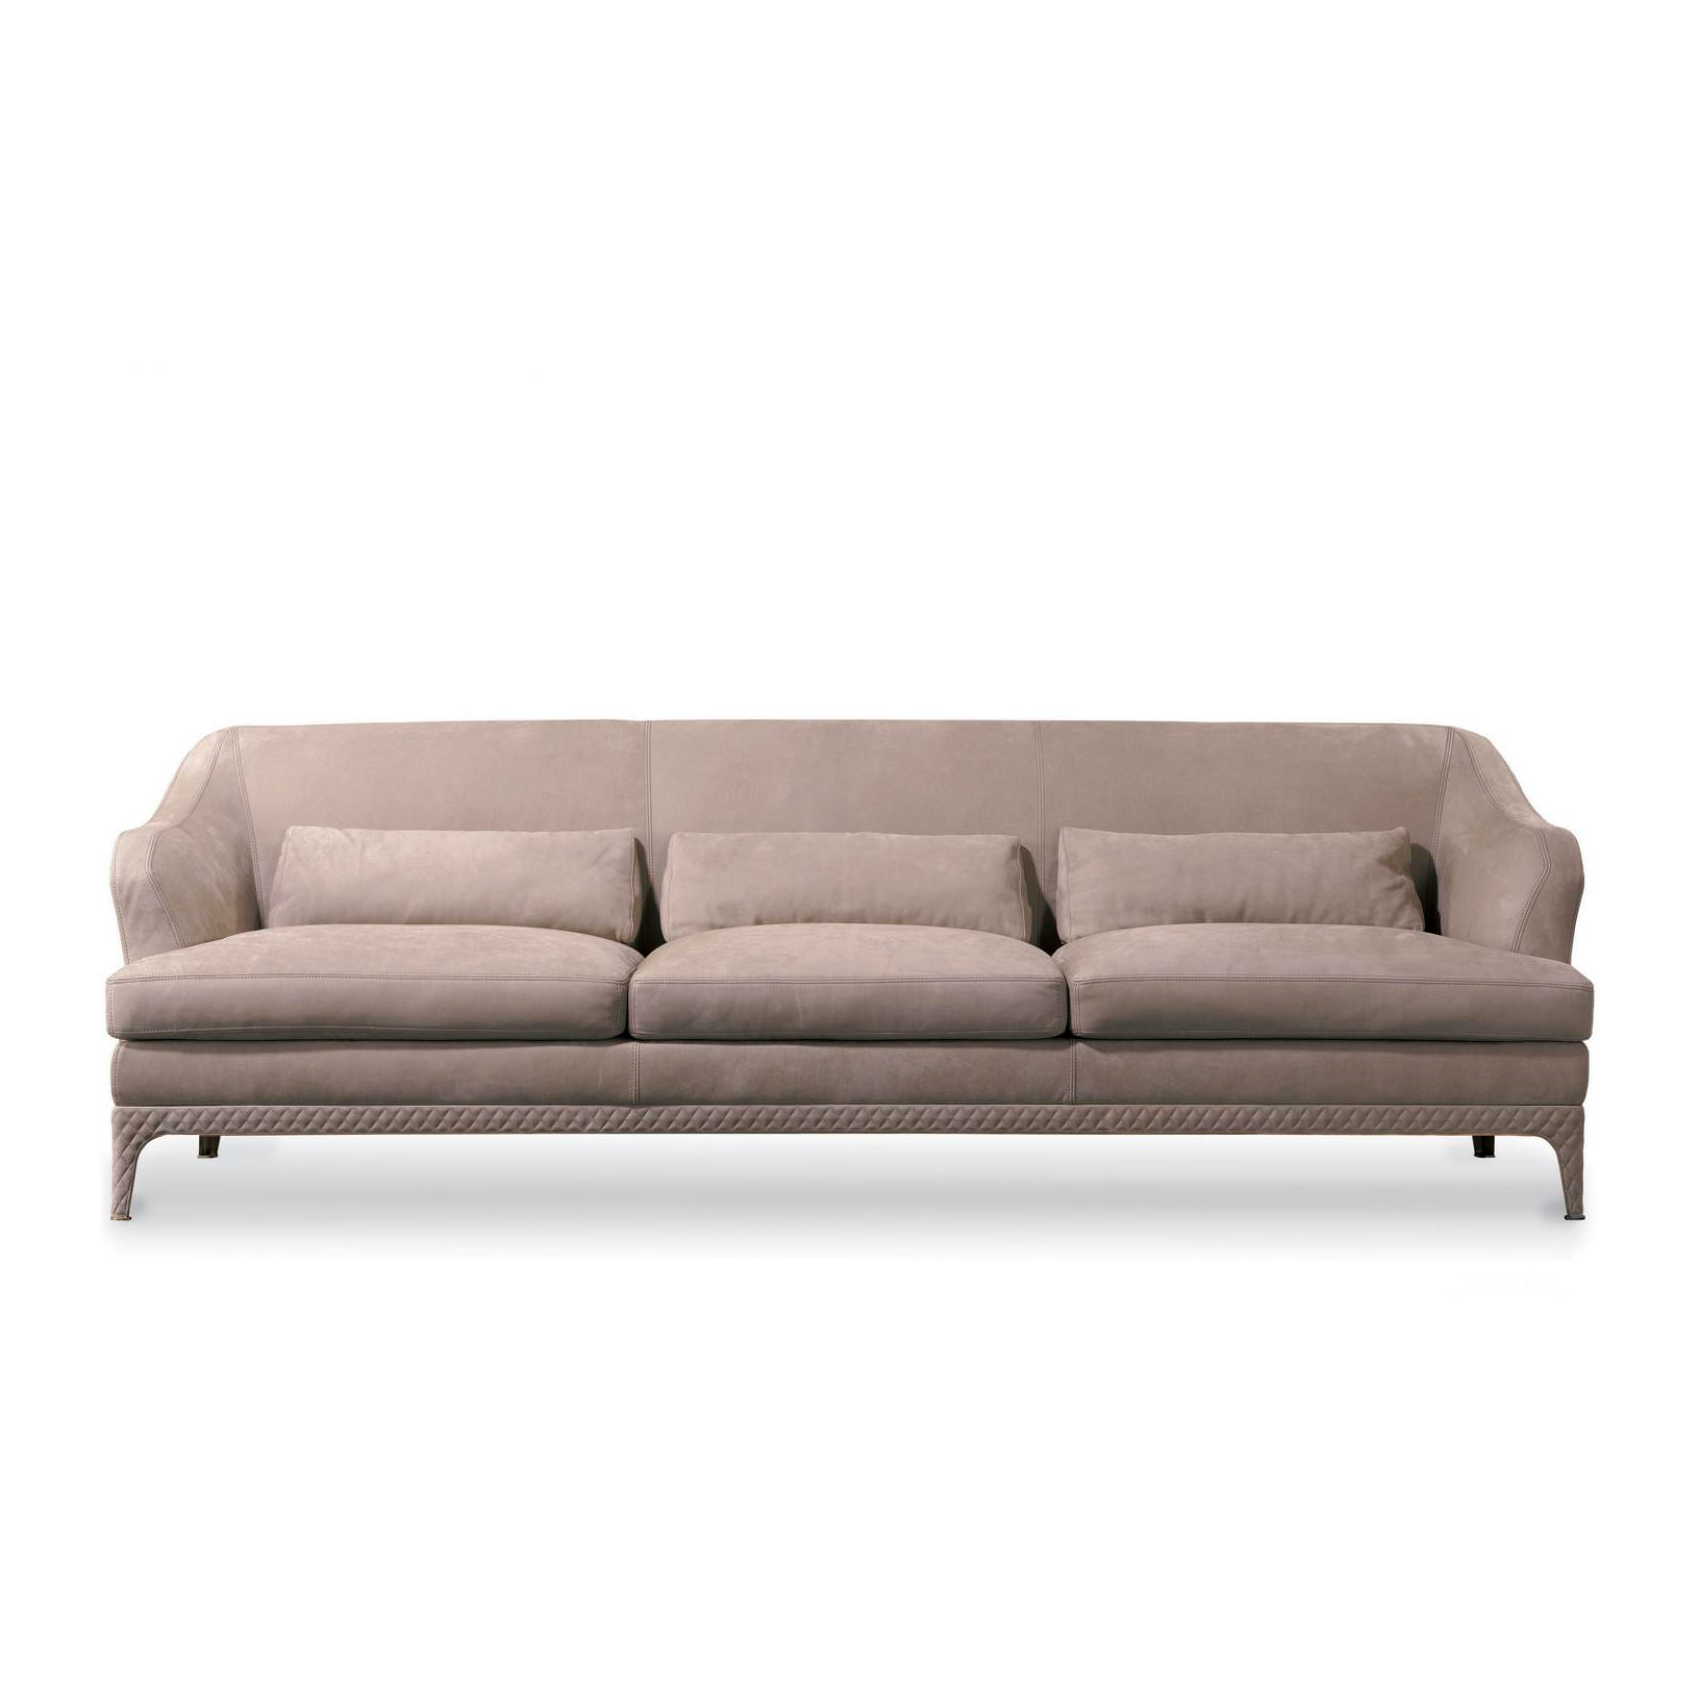 Oscar Chic Sofa